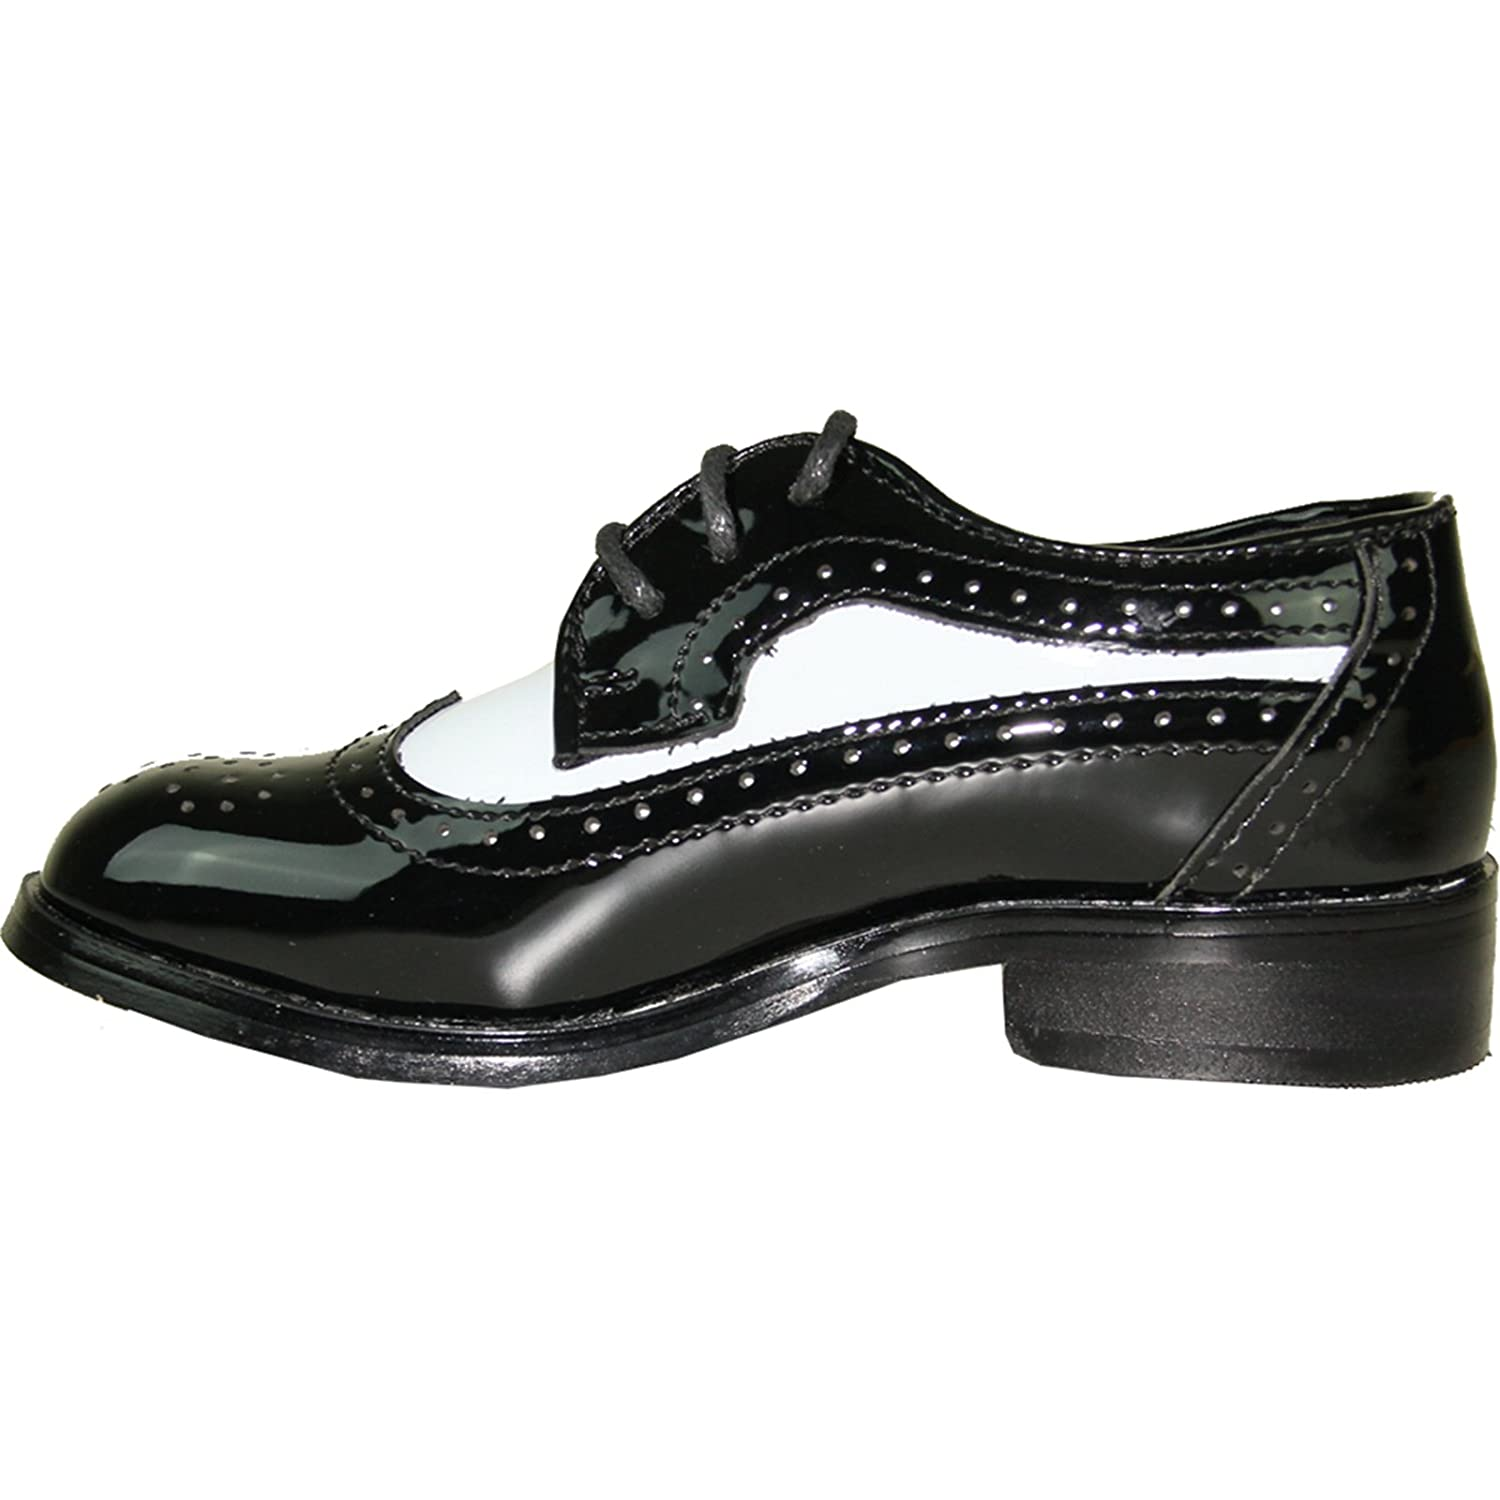 Jean Yves Boy Dress Shoe JY03KID Wing Tip Two-Tone Tuxedo for Wedding Prom and Formal Event